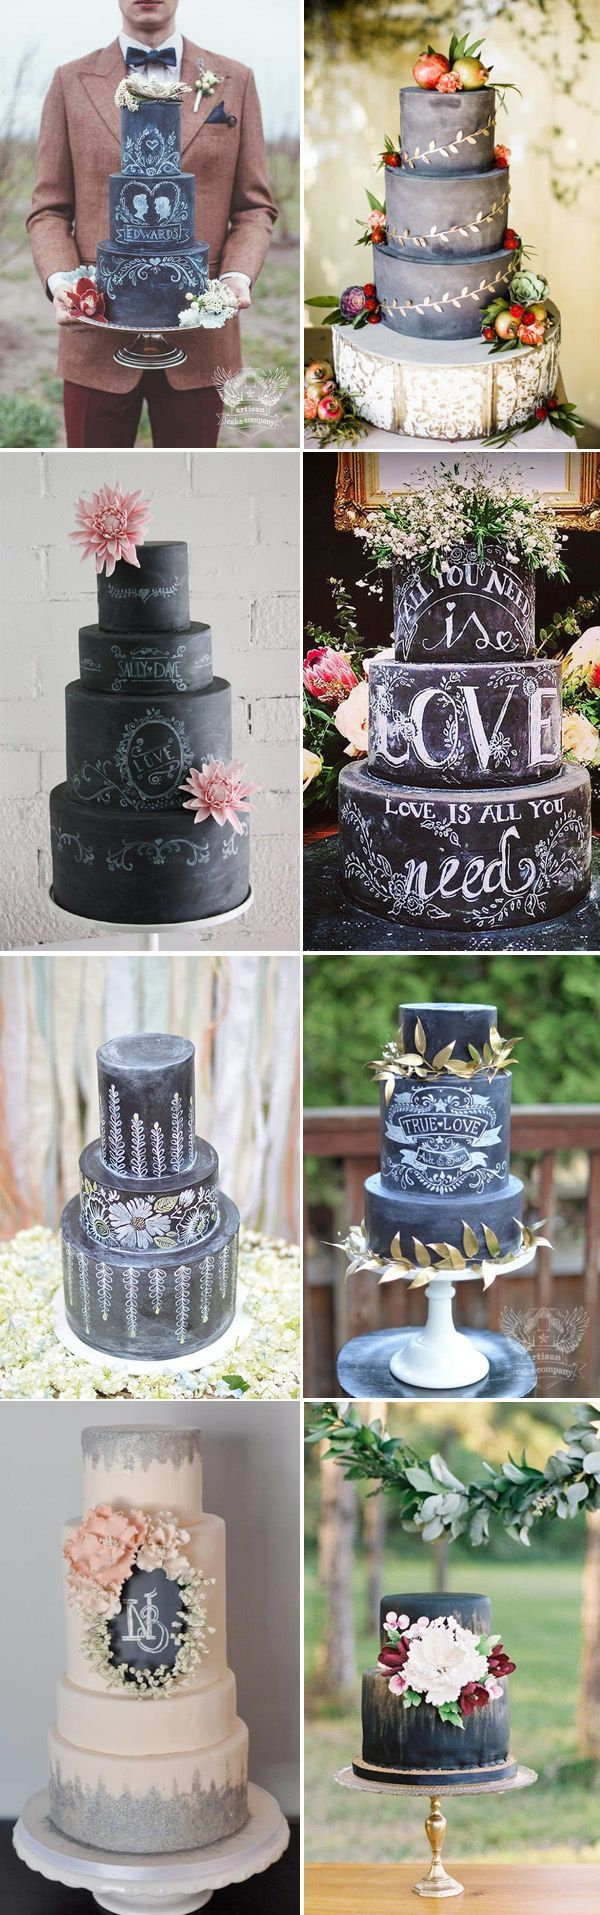 Rustic Wedding Cake Ideas - Black and White Chalkboard Wedding Cakes: